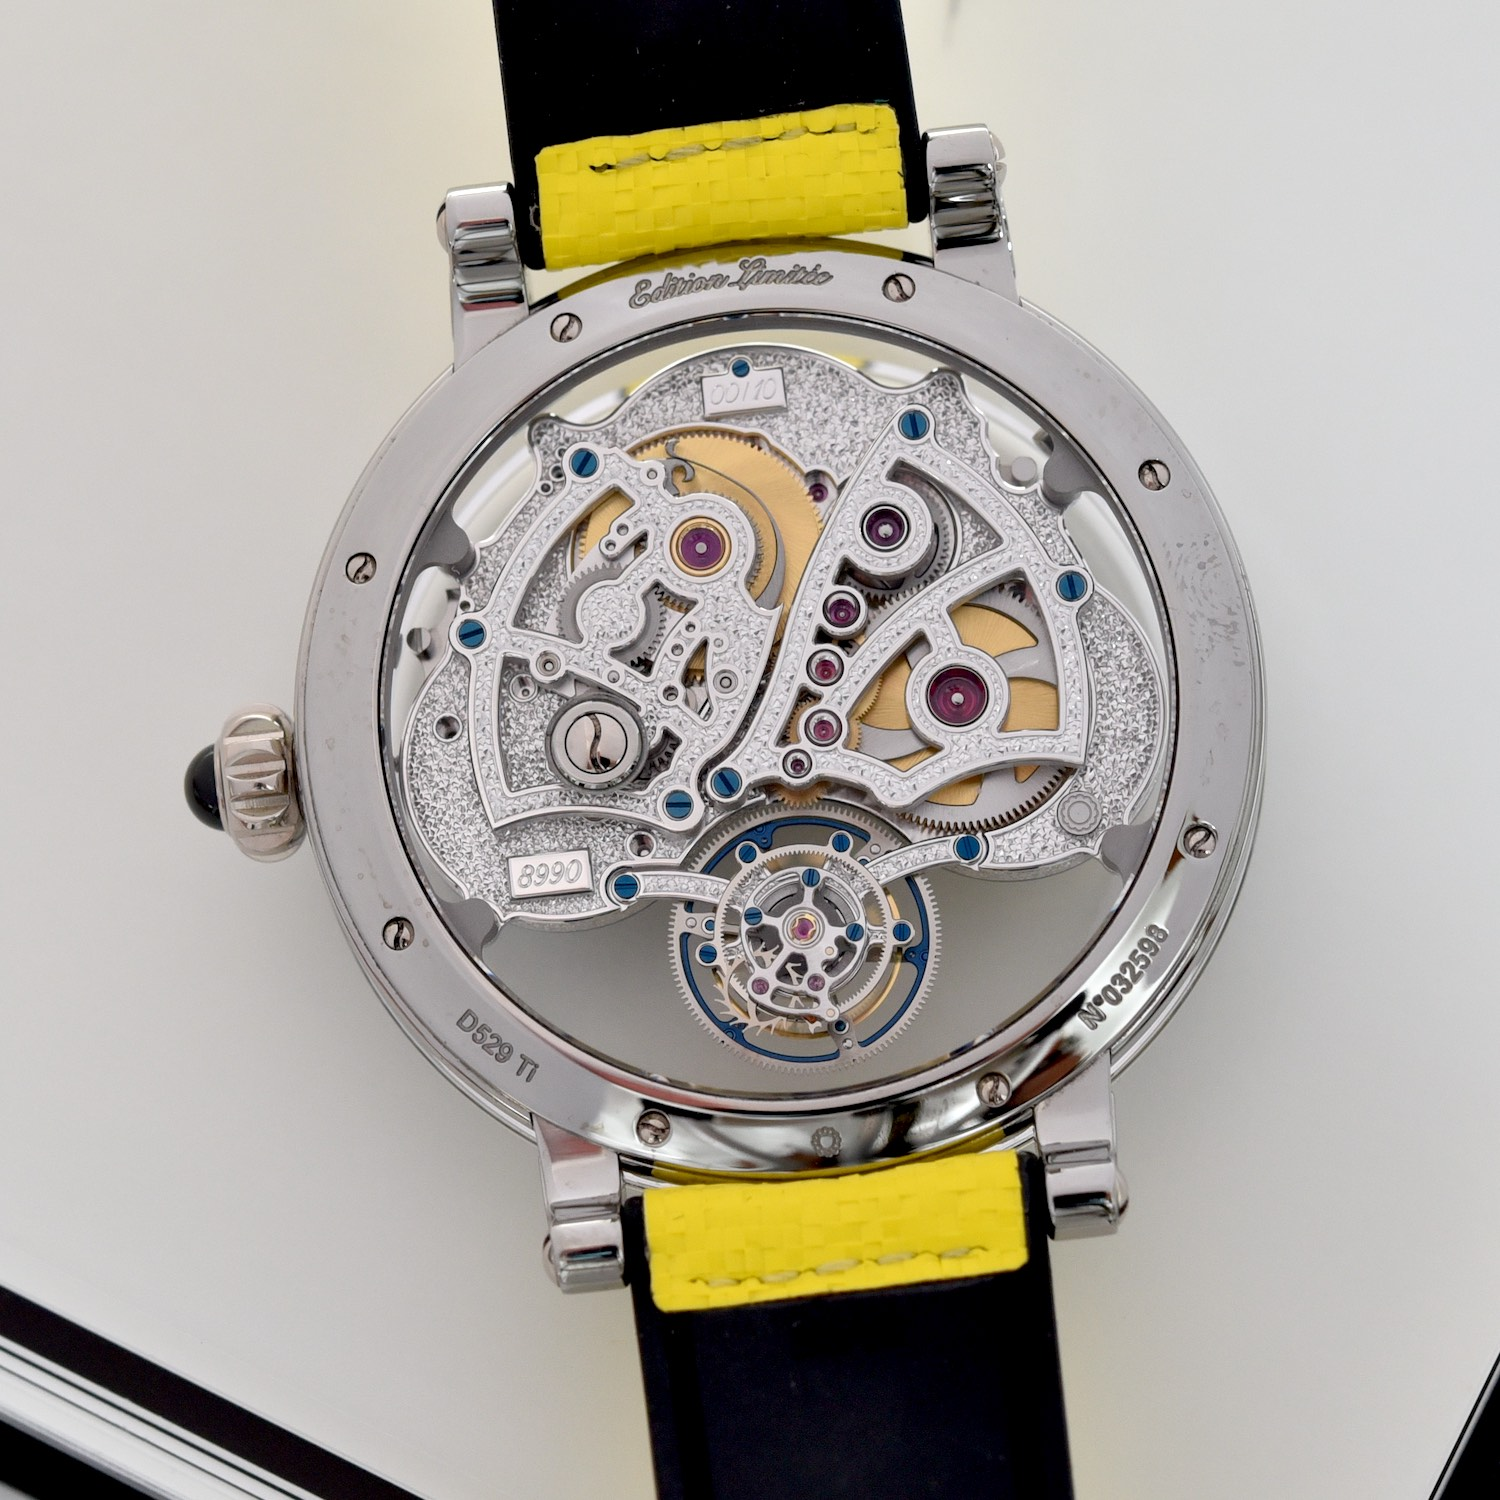 Bovet Recital 26 Brainstorm Chapter 2 sunshine yellow - 3